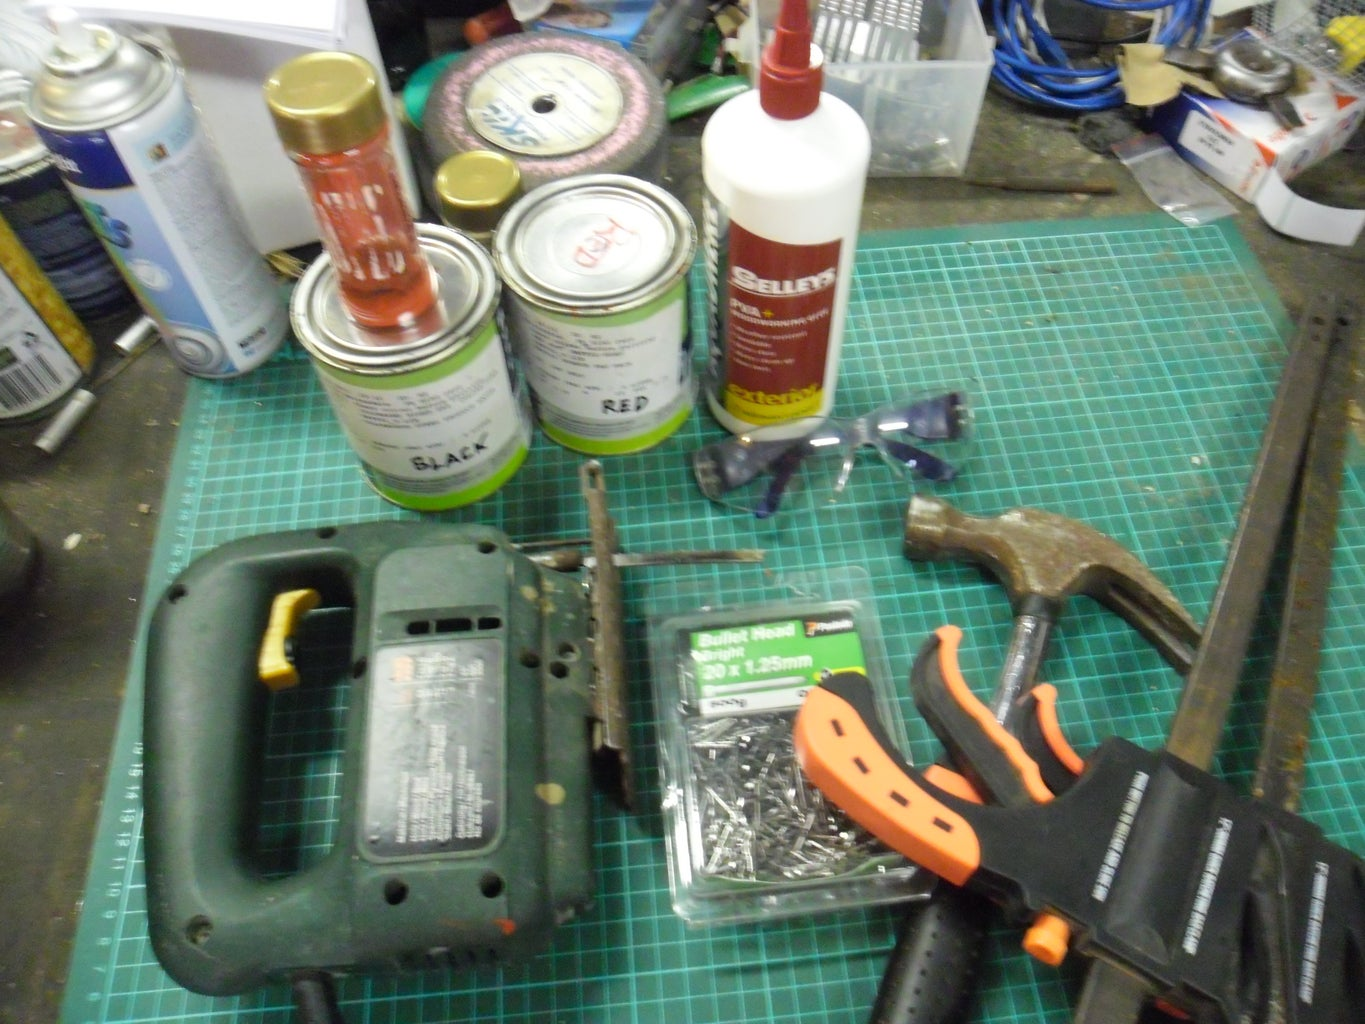 Materials and Tools Required